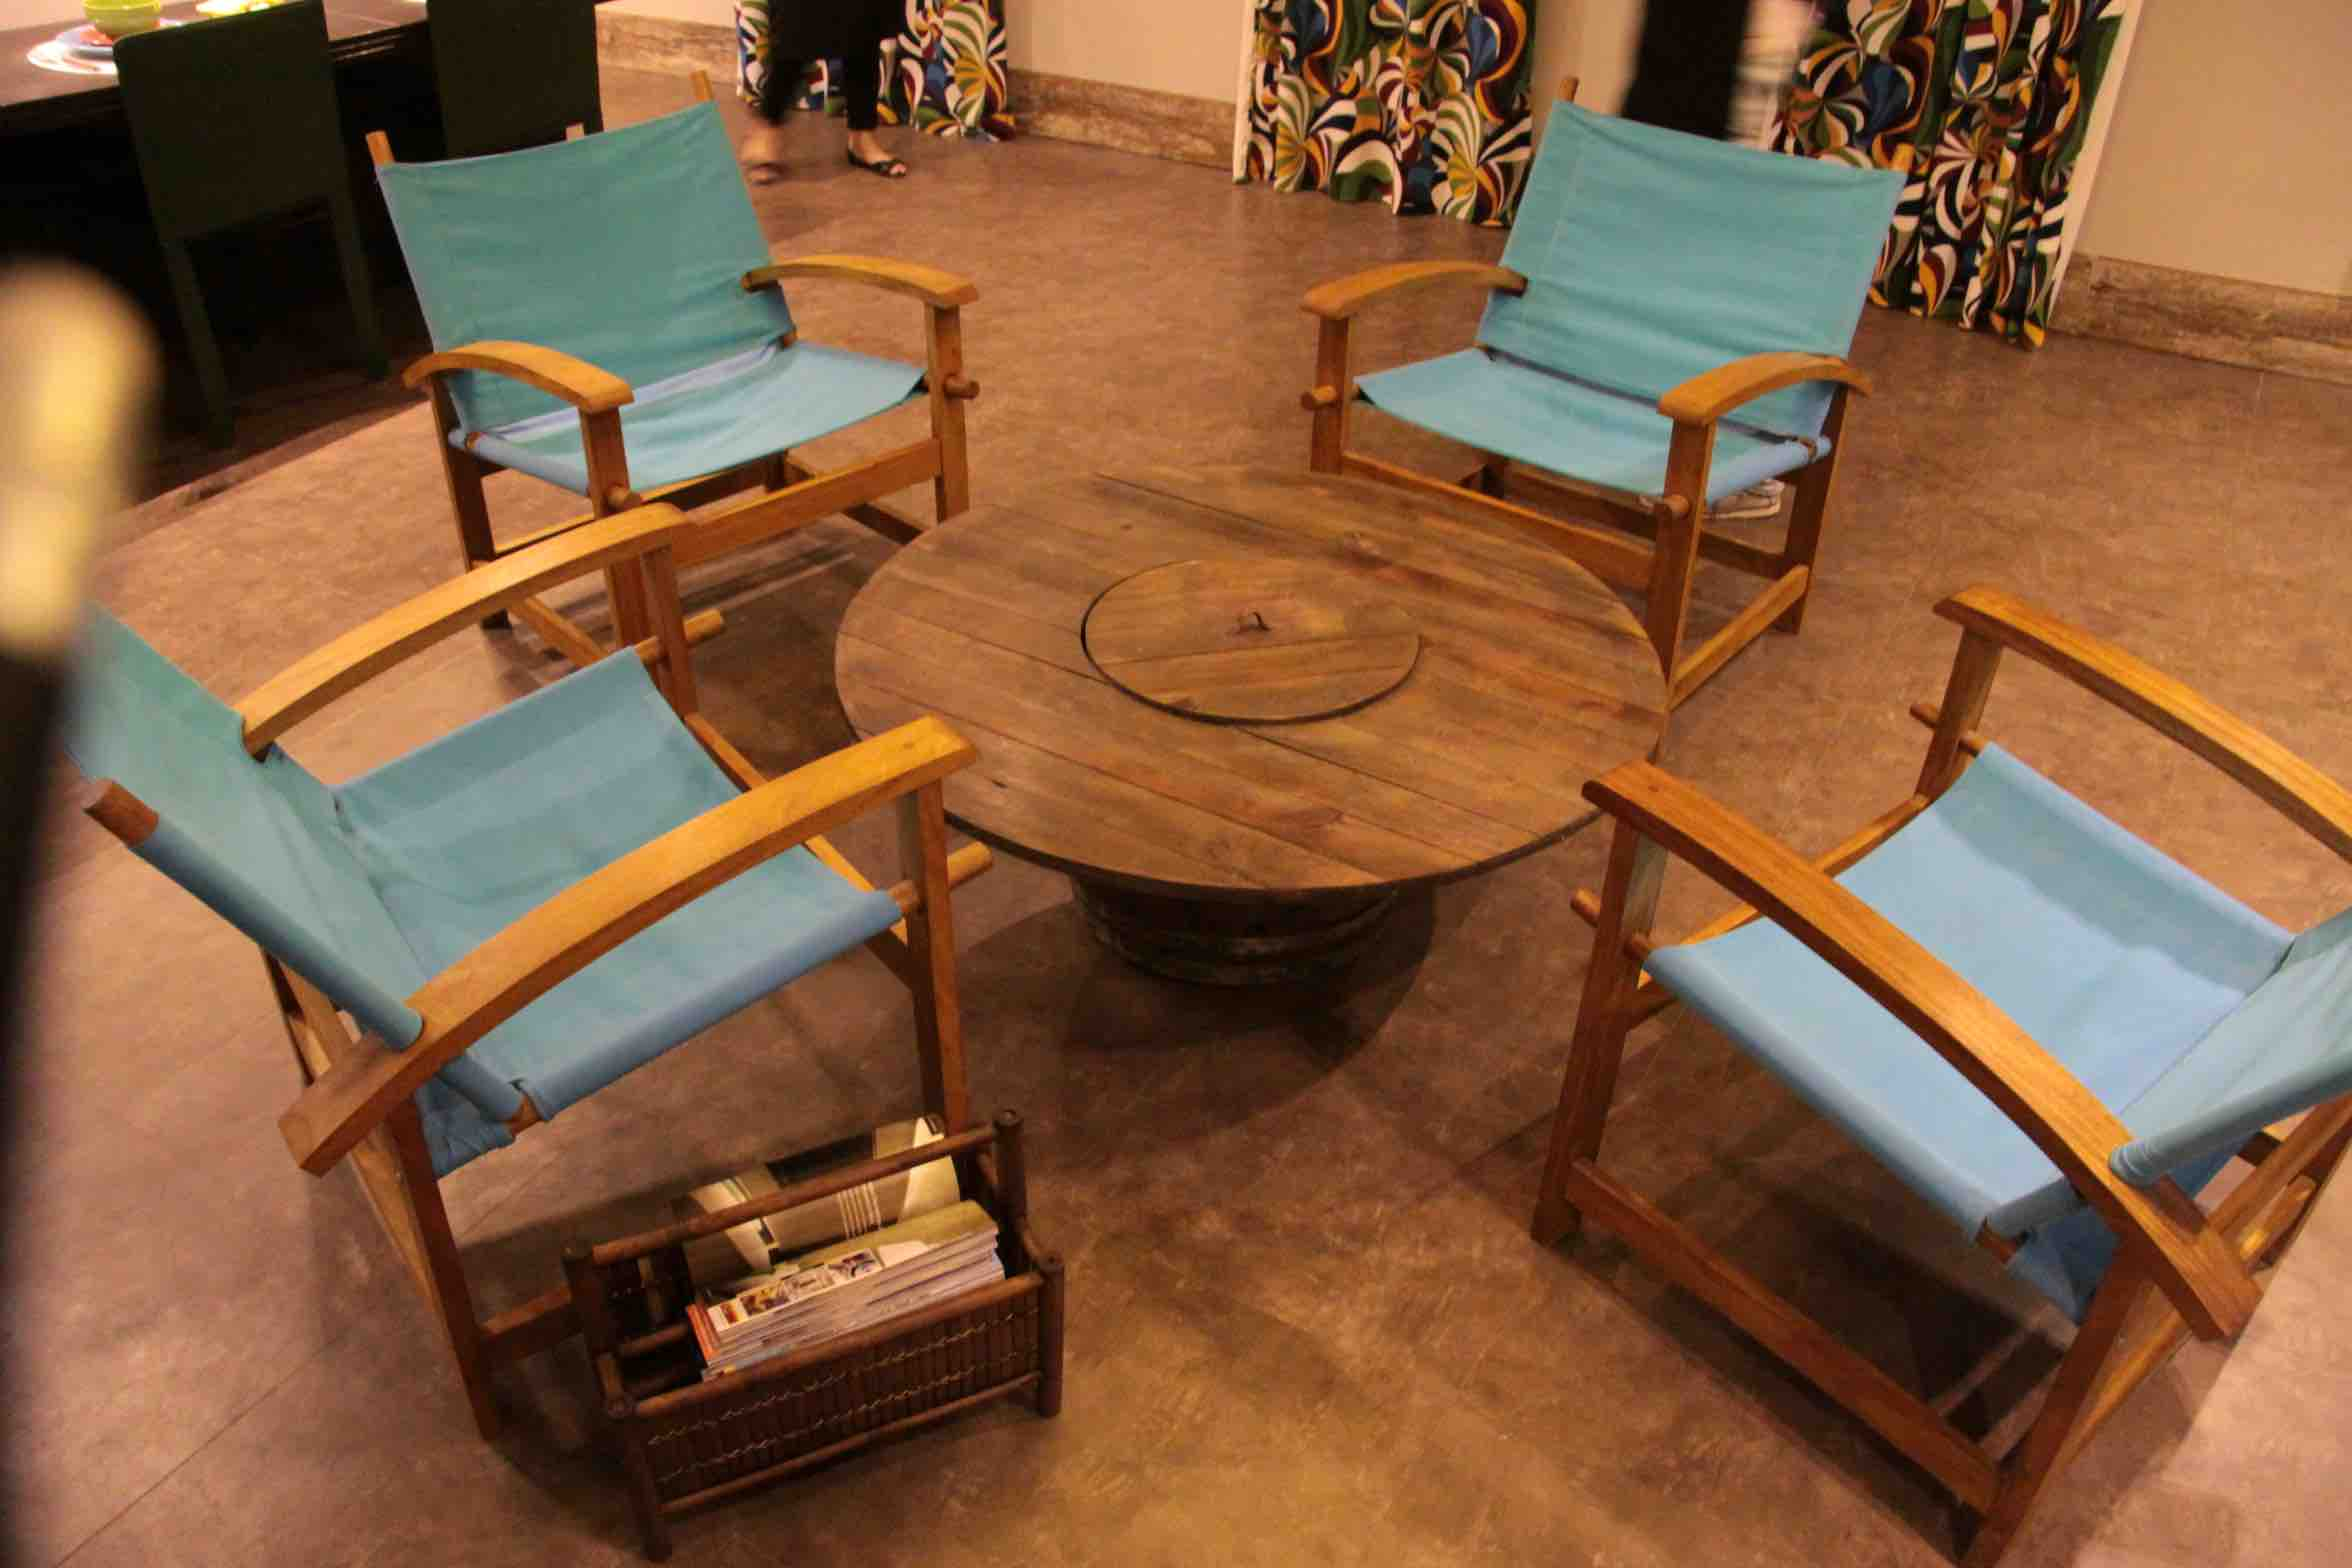 An electric wire reel reused as a center table in a Rio de Janeiro decoration fair  TỔNG QUAN NGÀNH THIẾT KẾ NỘI THẤT An electric wire reel reused as a center table in a Rio de Janeiro decoration fair